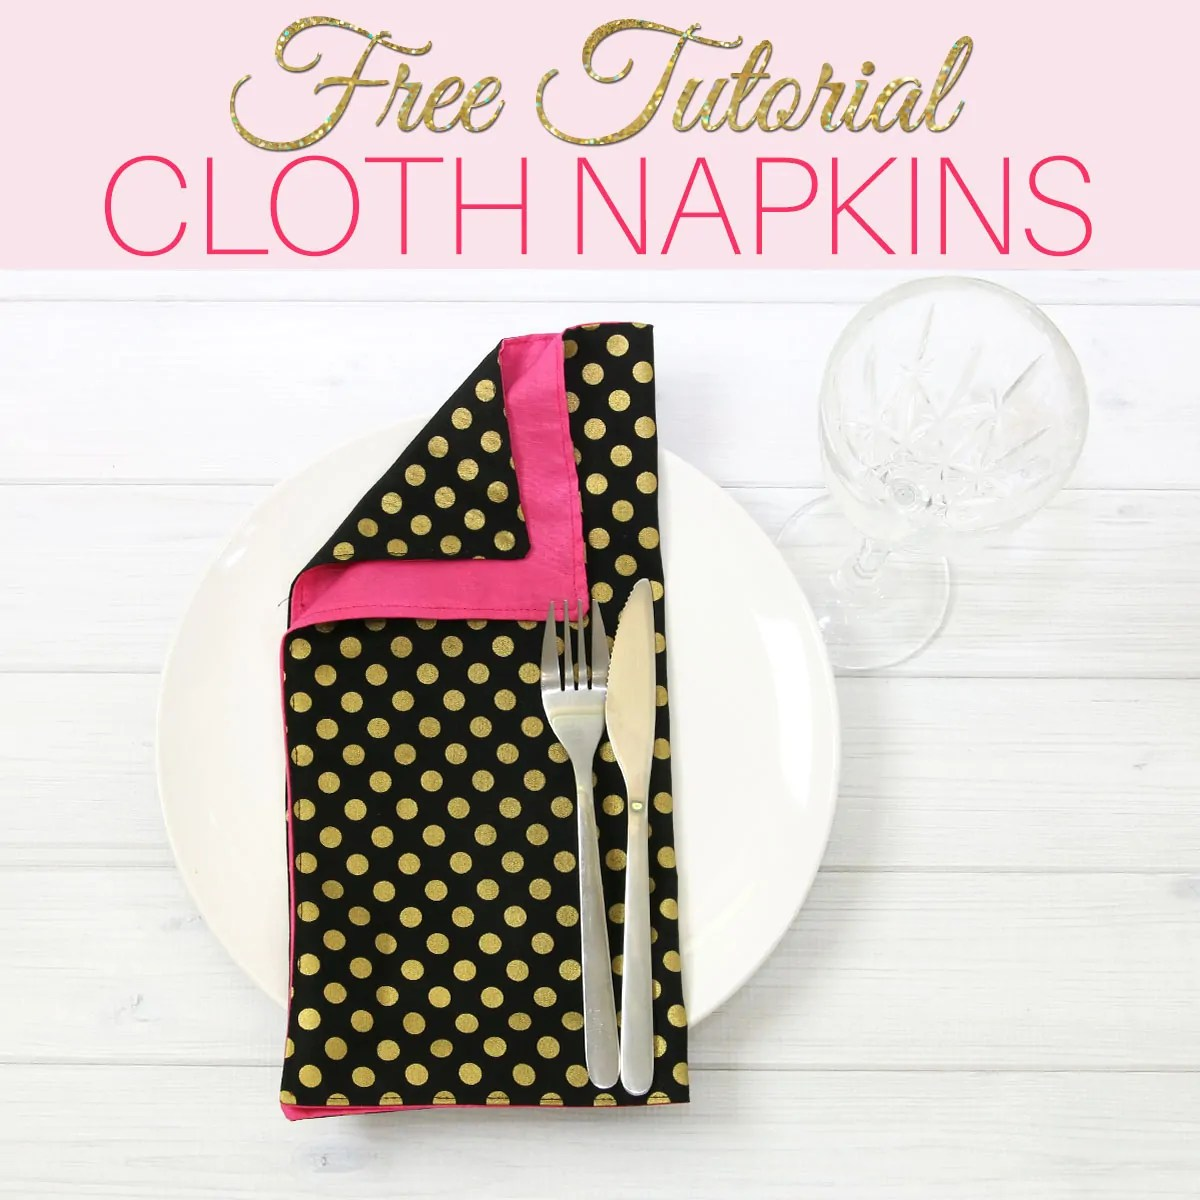 How to Make Cloth Napkins - Reversible Napkins in 5 minutes |TREASURIE